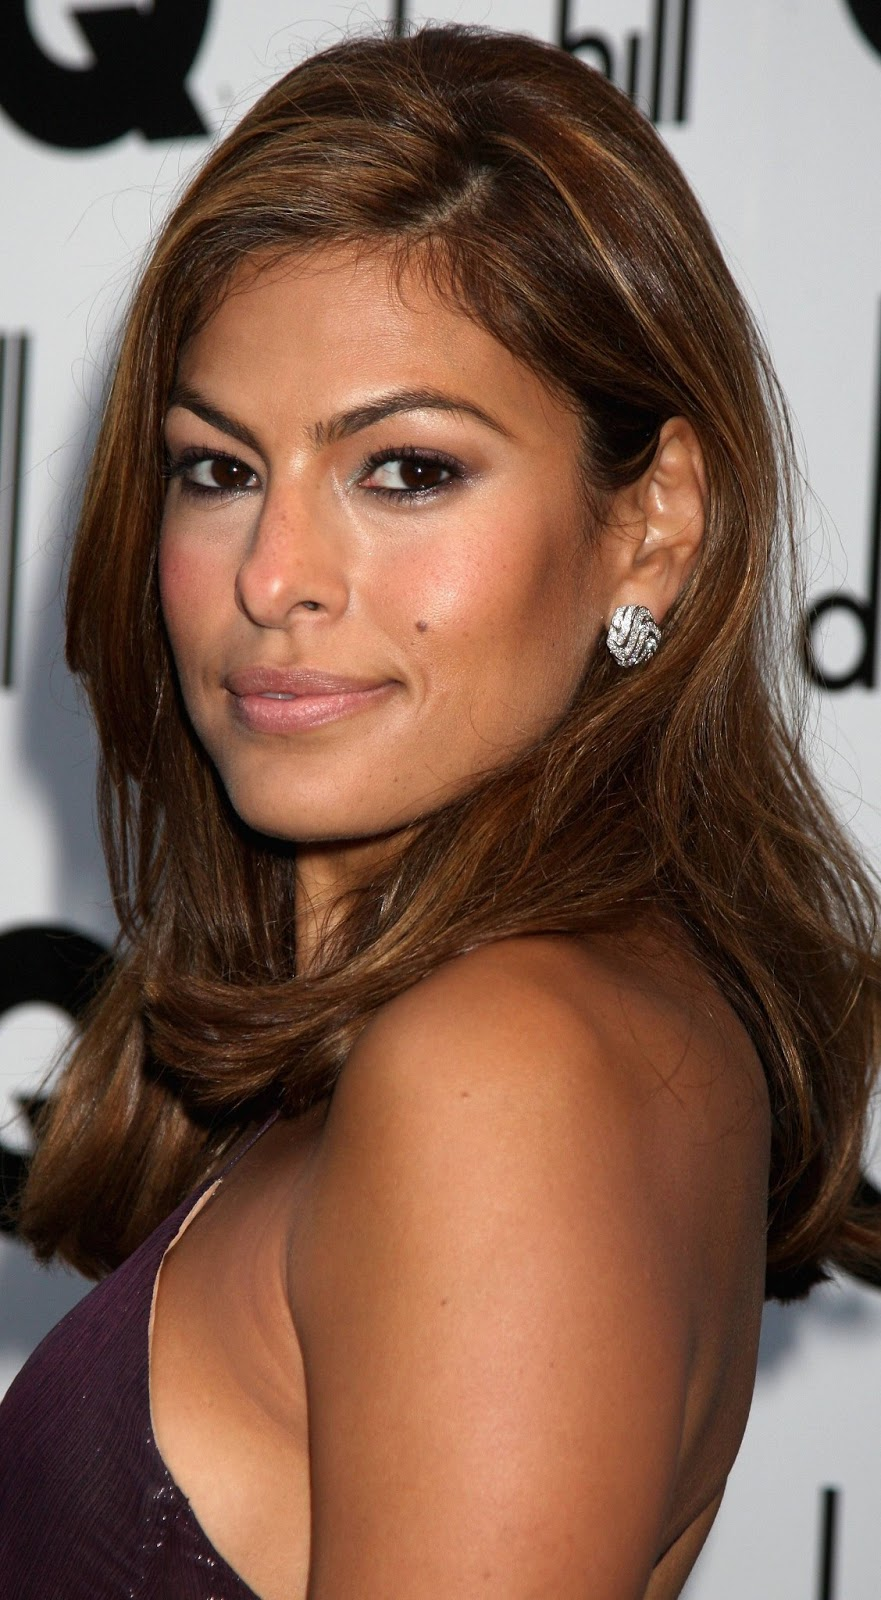 Horoscope Hd Wallpapers Eva Mendes Eva Mendes